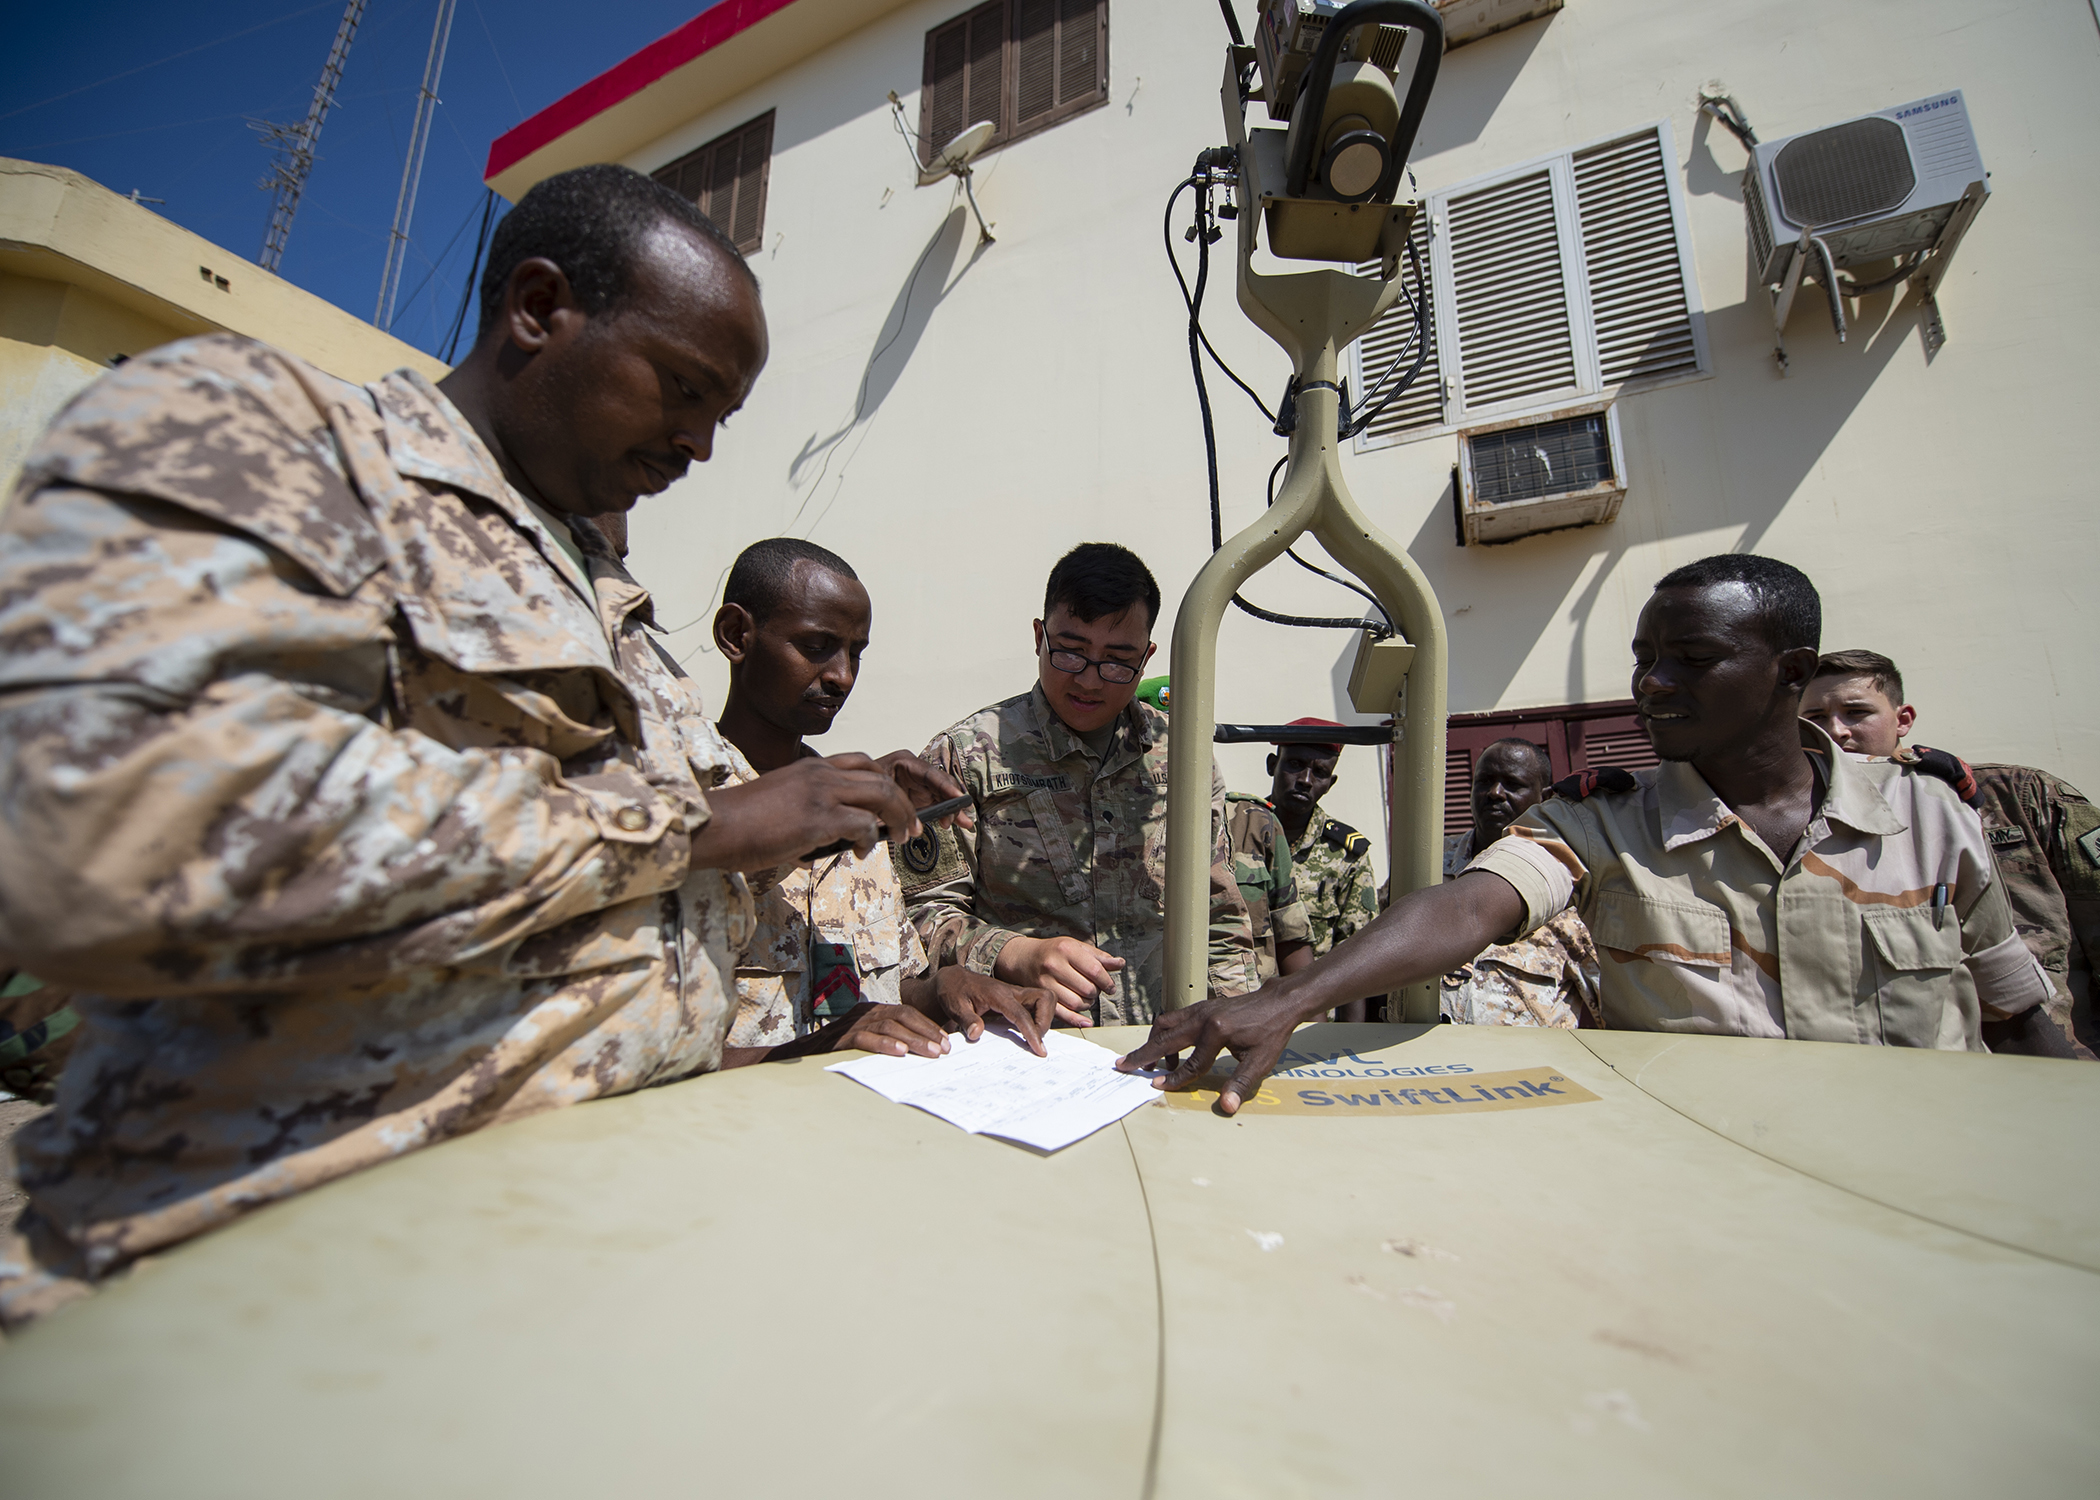 U.S. Army Spc. Legend Khotsombath, assigned to the Combined Joint Task Force-Horn of Africa communications directorate, explains parts of a satellite unit during an Africa Data Sharing Network (ADSN), version two, information exchange with Djibouti Army (FAD) soldiers at FAD Headquarters, Djibouti, Dec. 26, 2018. The ADSN works as an internal network that the African Union Mission in Somalia troop-contributing countries can use to communicate and share information amongst each other. (U.S. Air Force photo by Tech. Sgt. Shawn Nickel)